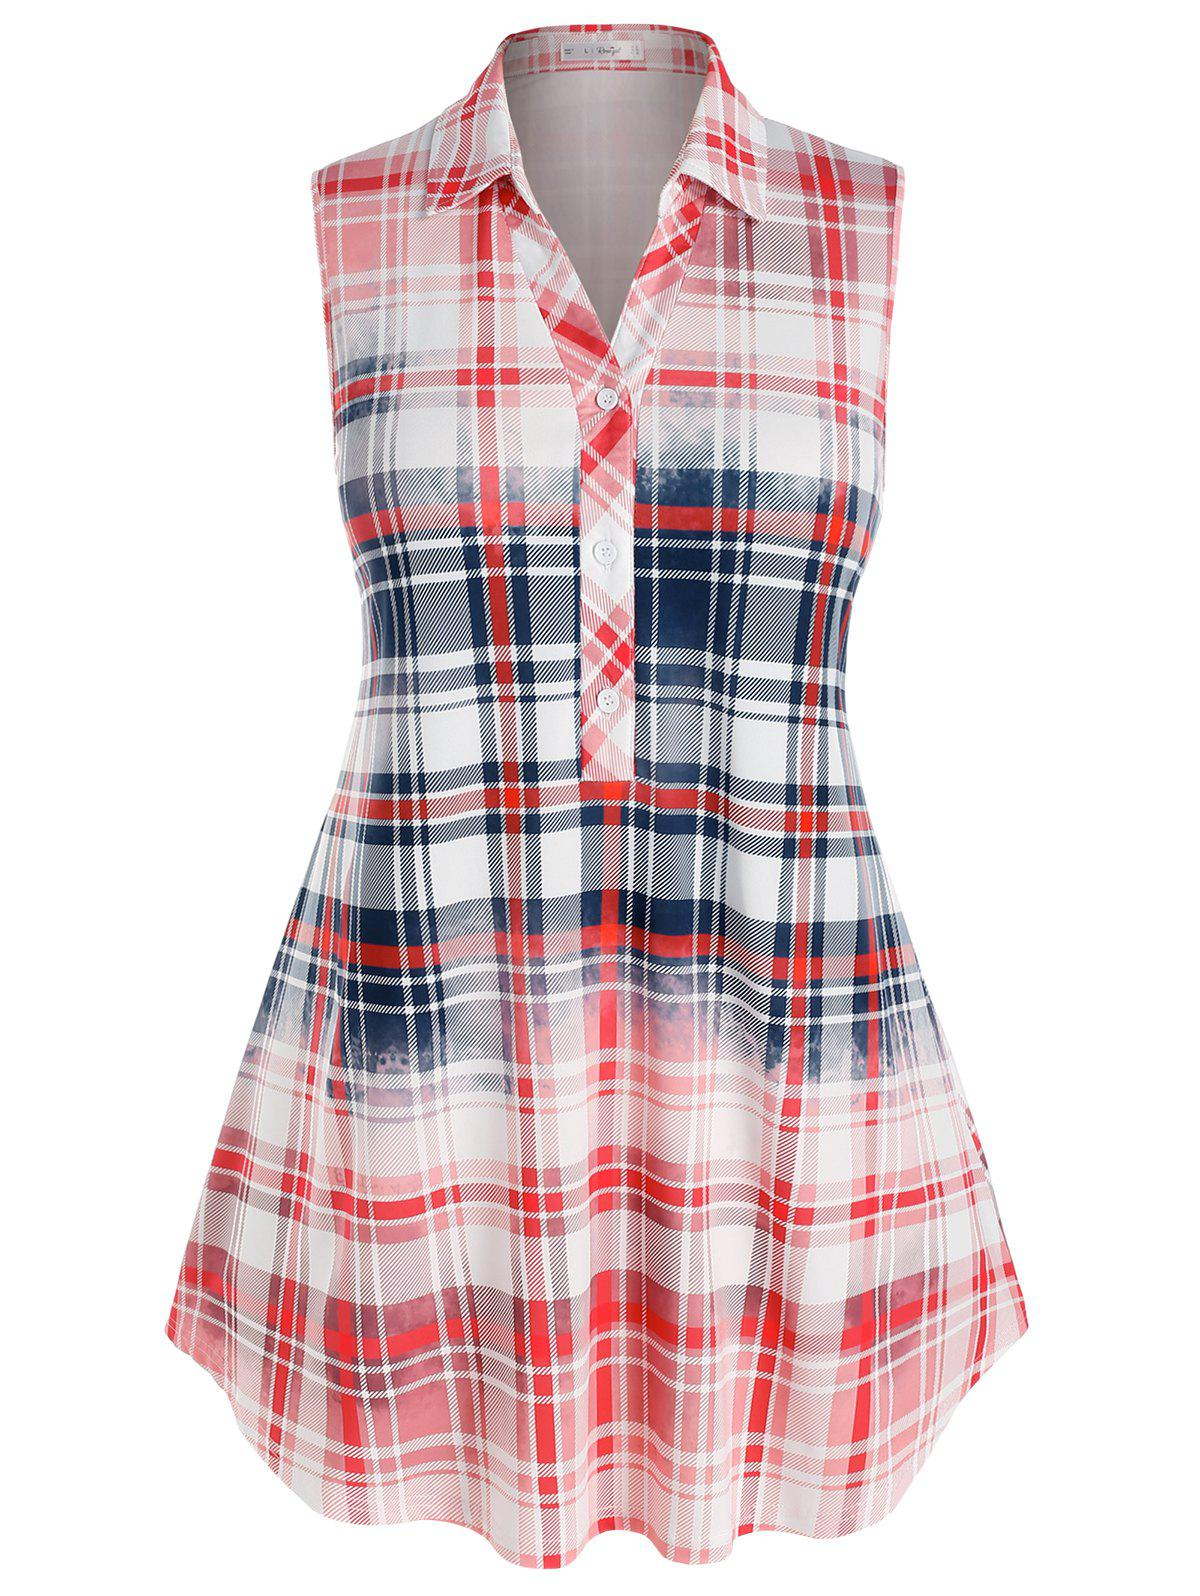 Plus Size Sleeveless Plaid Colorblock Blouse - multicolor 5X